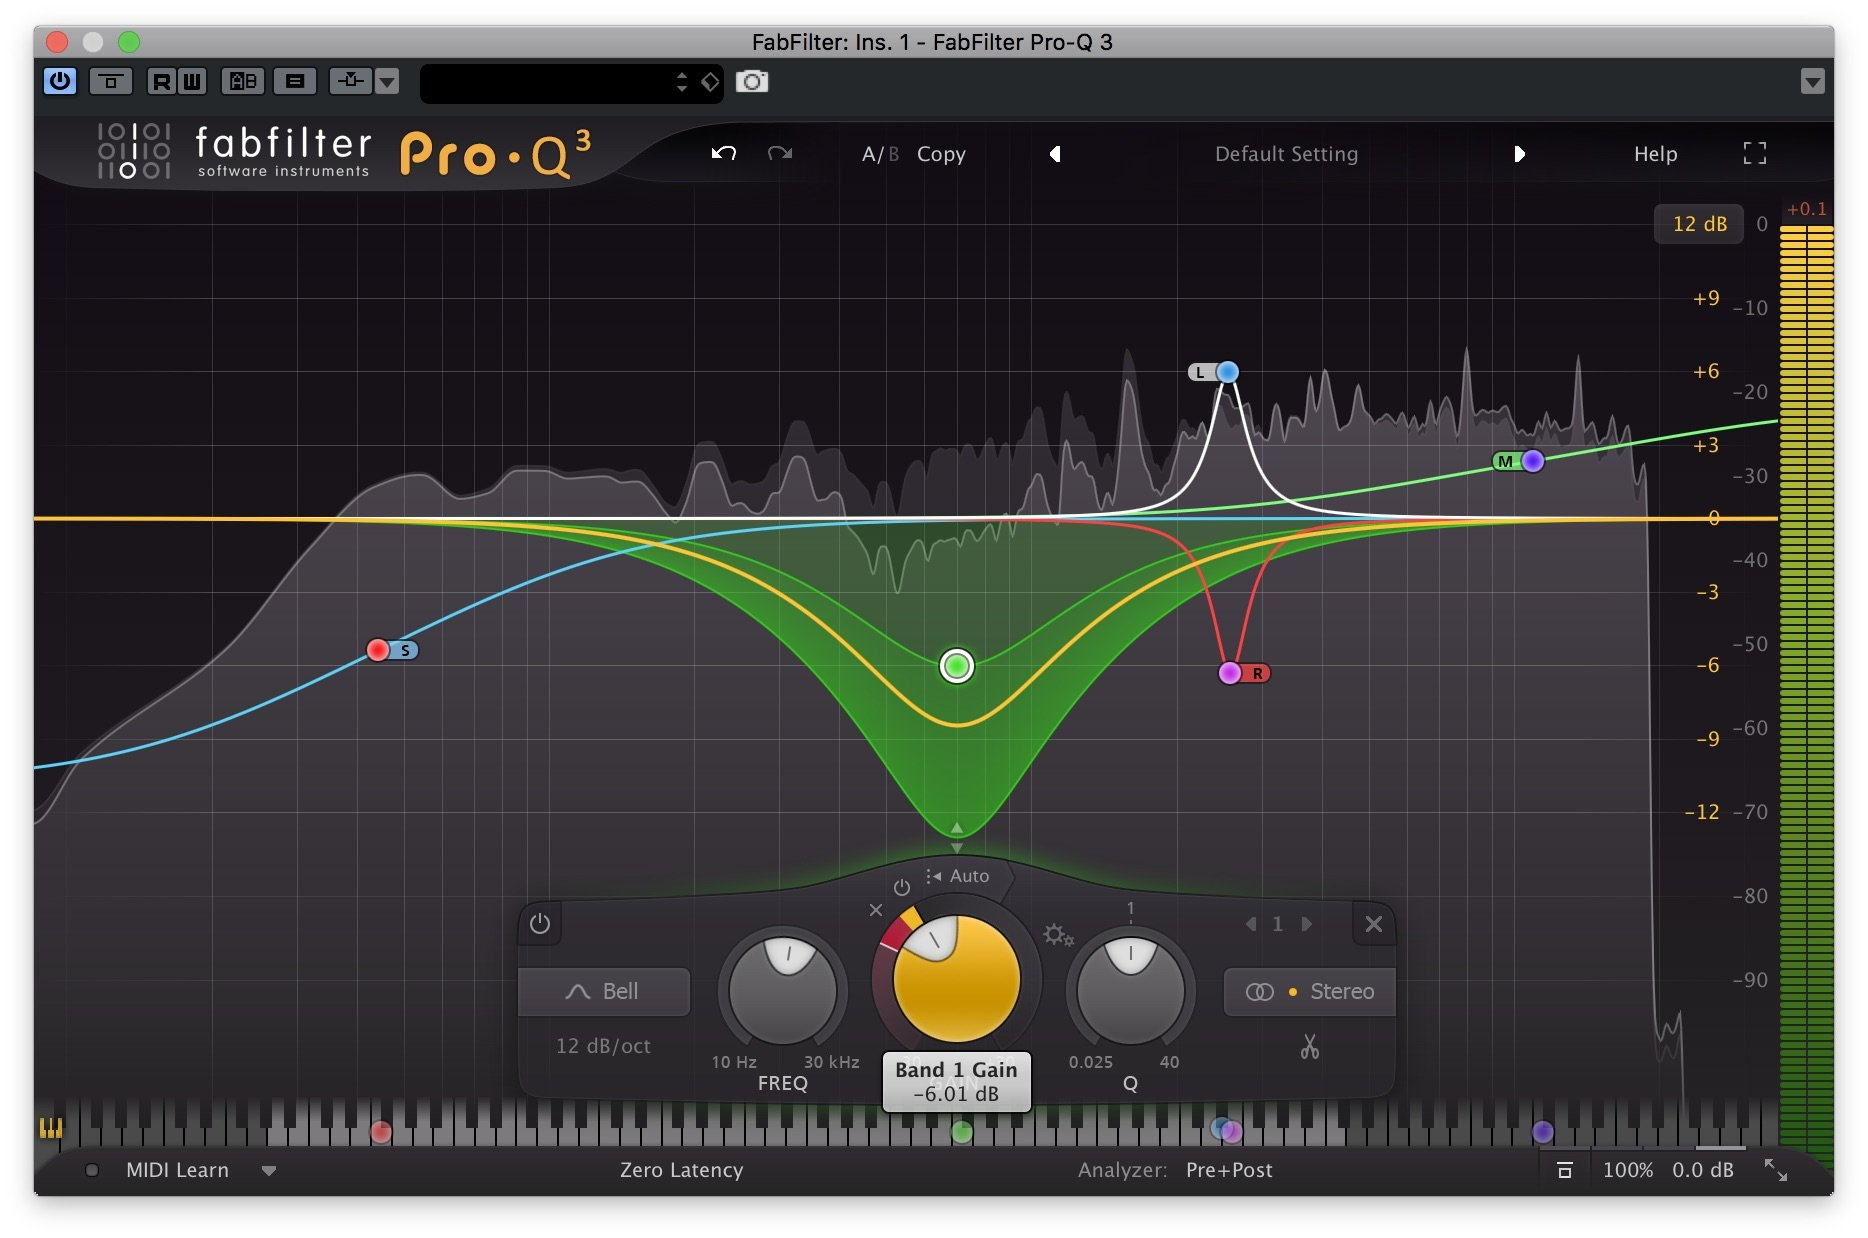 FabFilter Pro-Q 3 - Bande Stereo, Mono LR, Mid, Side